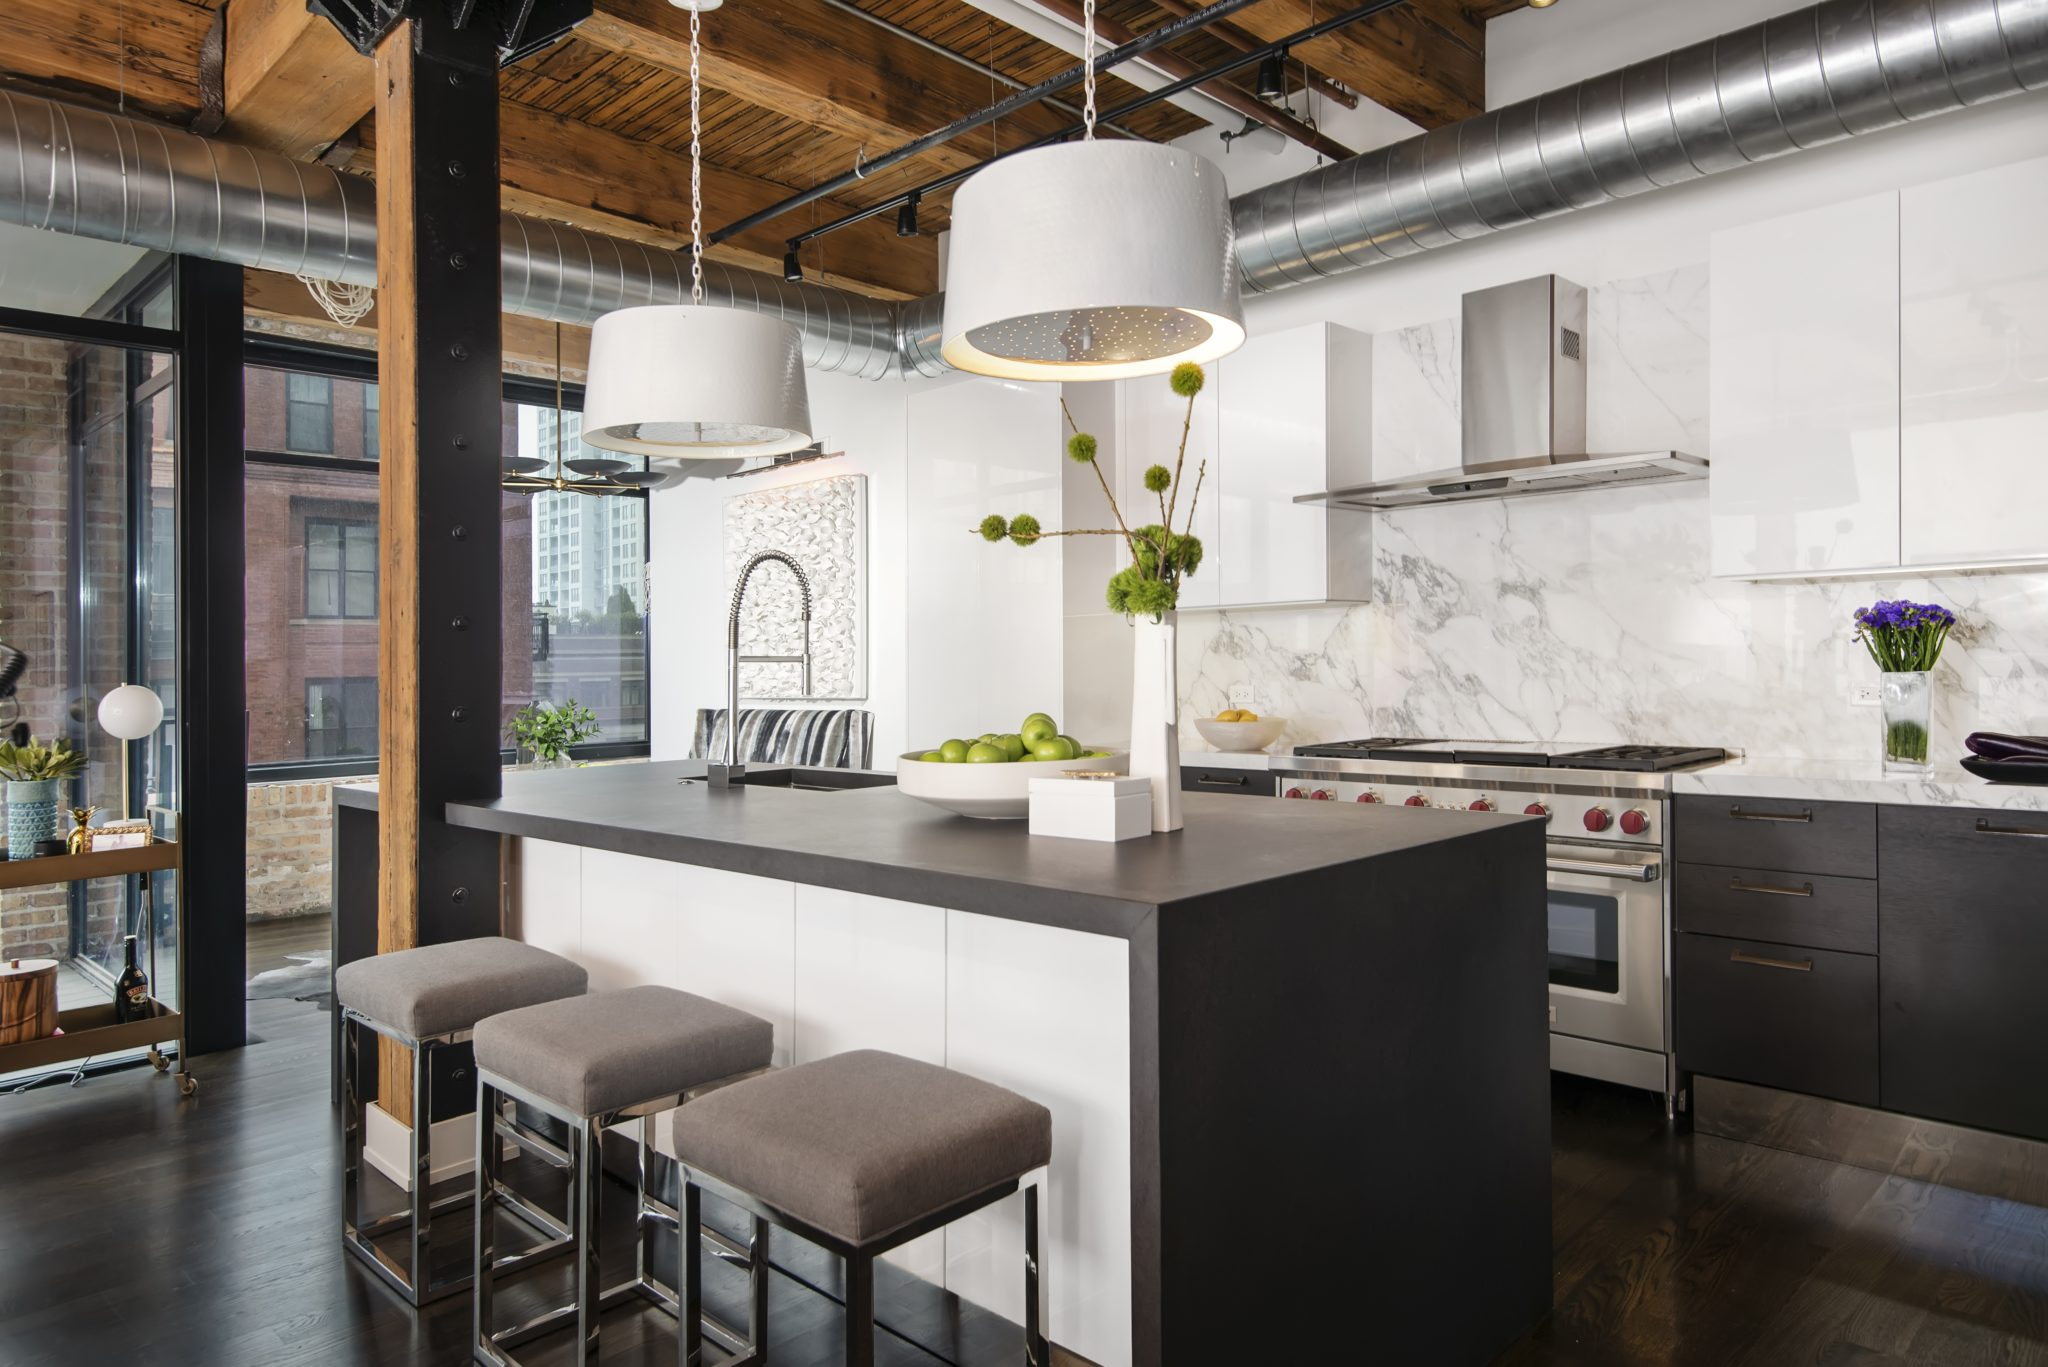 Former industrial timber loft building transformed into 41 sleek & modern units by Dresner Design